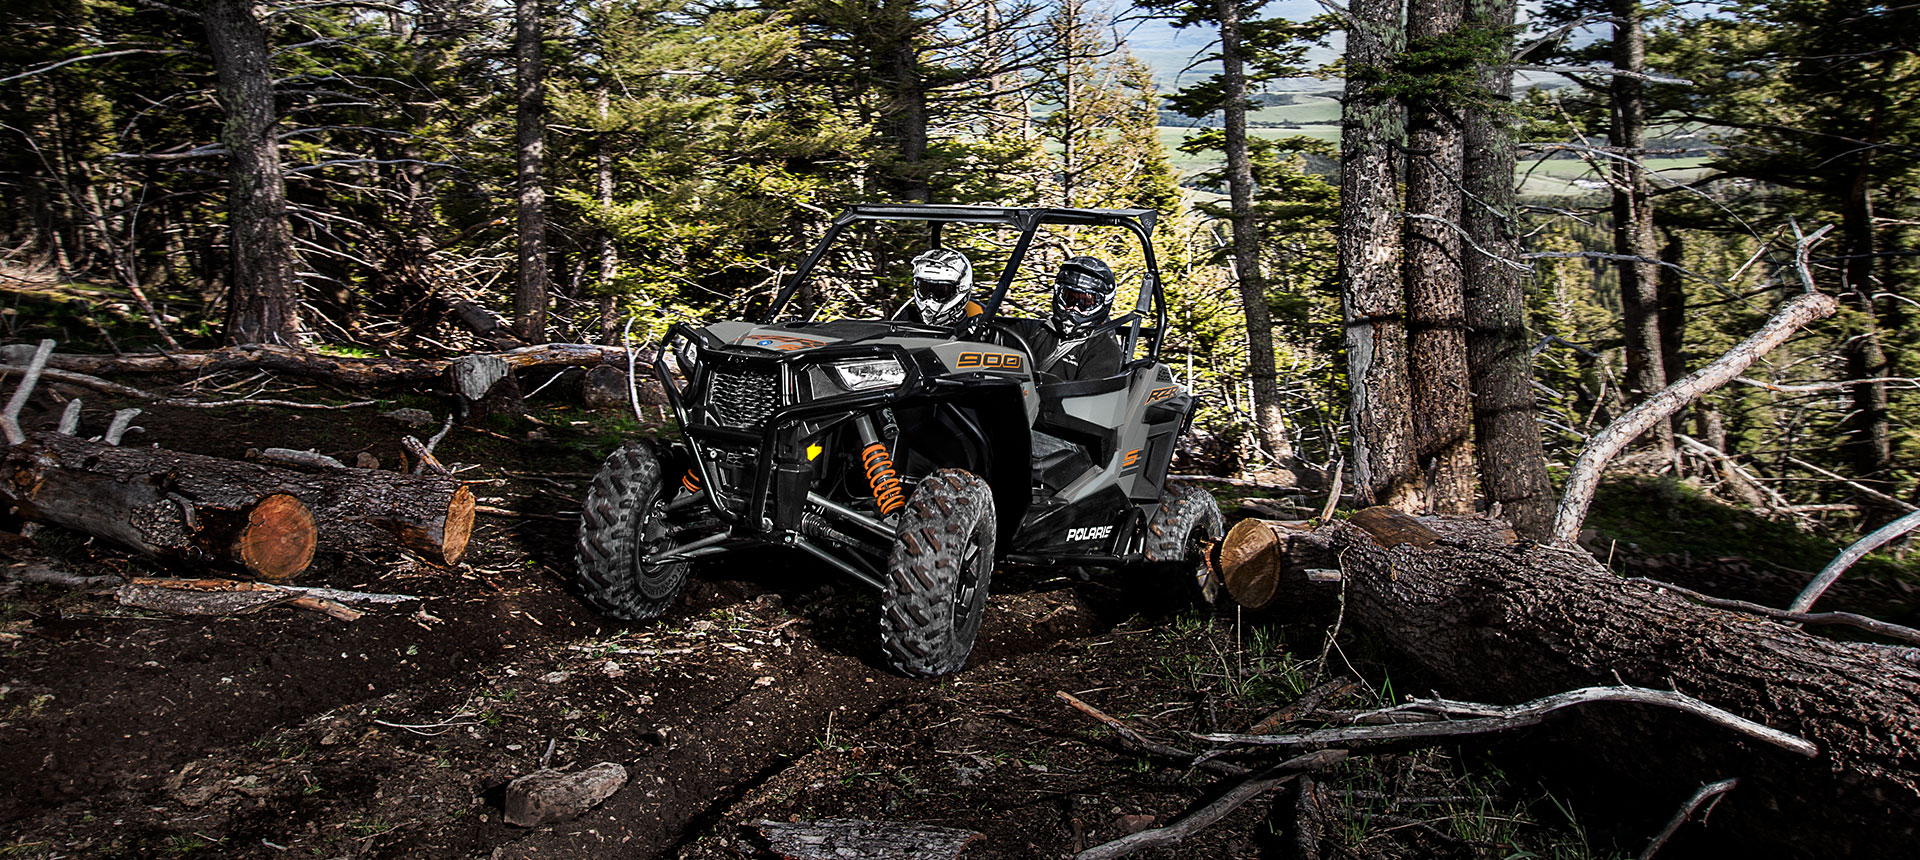 2019 Polaris RZR S 900 in Marietta, Ohio - Photo 2